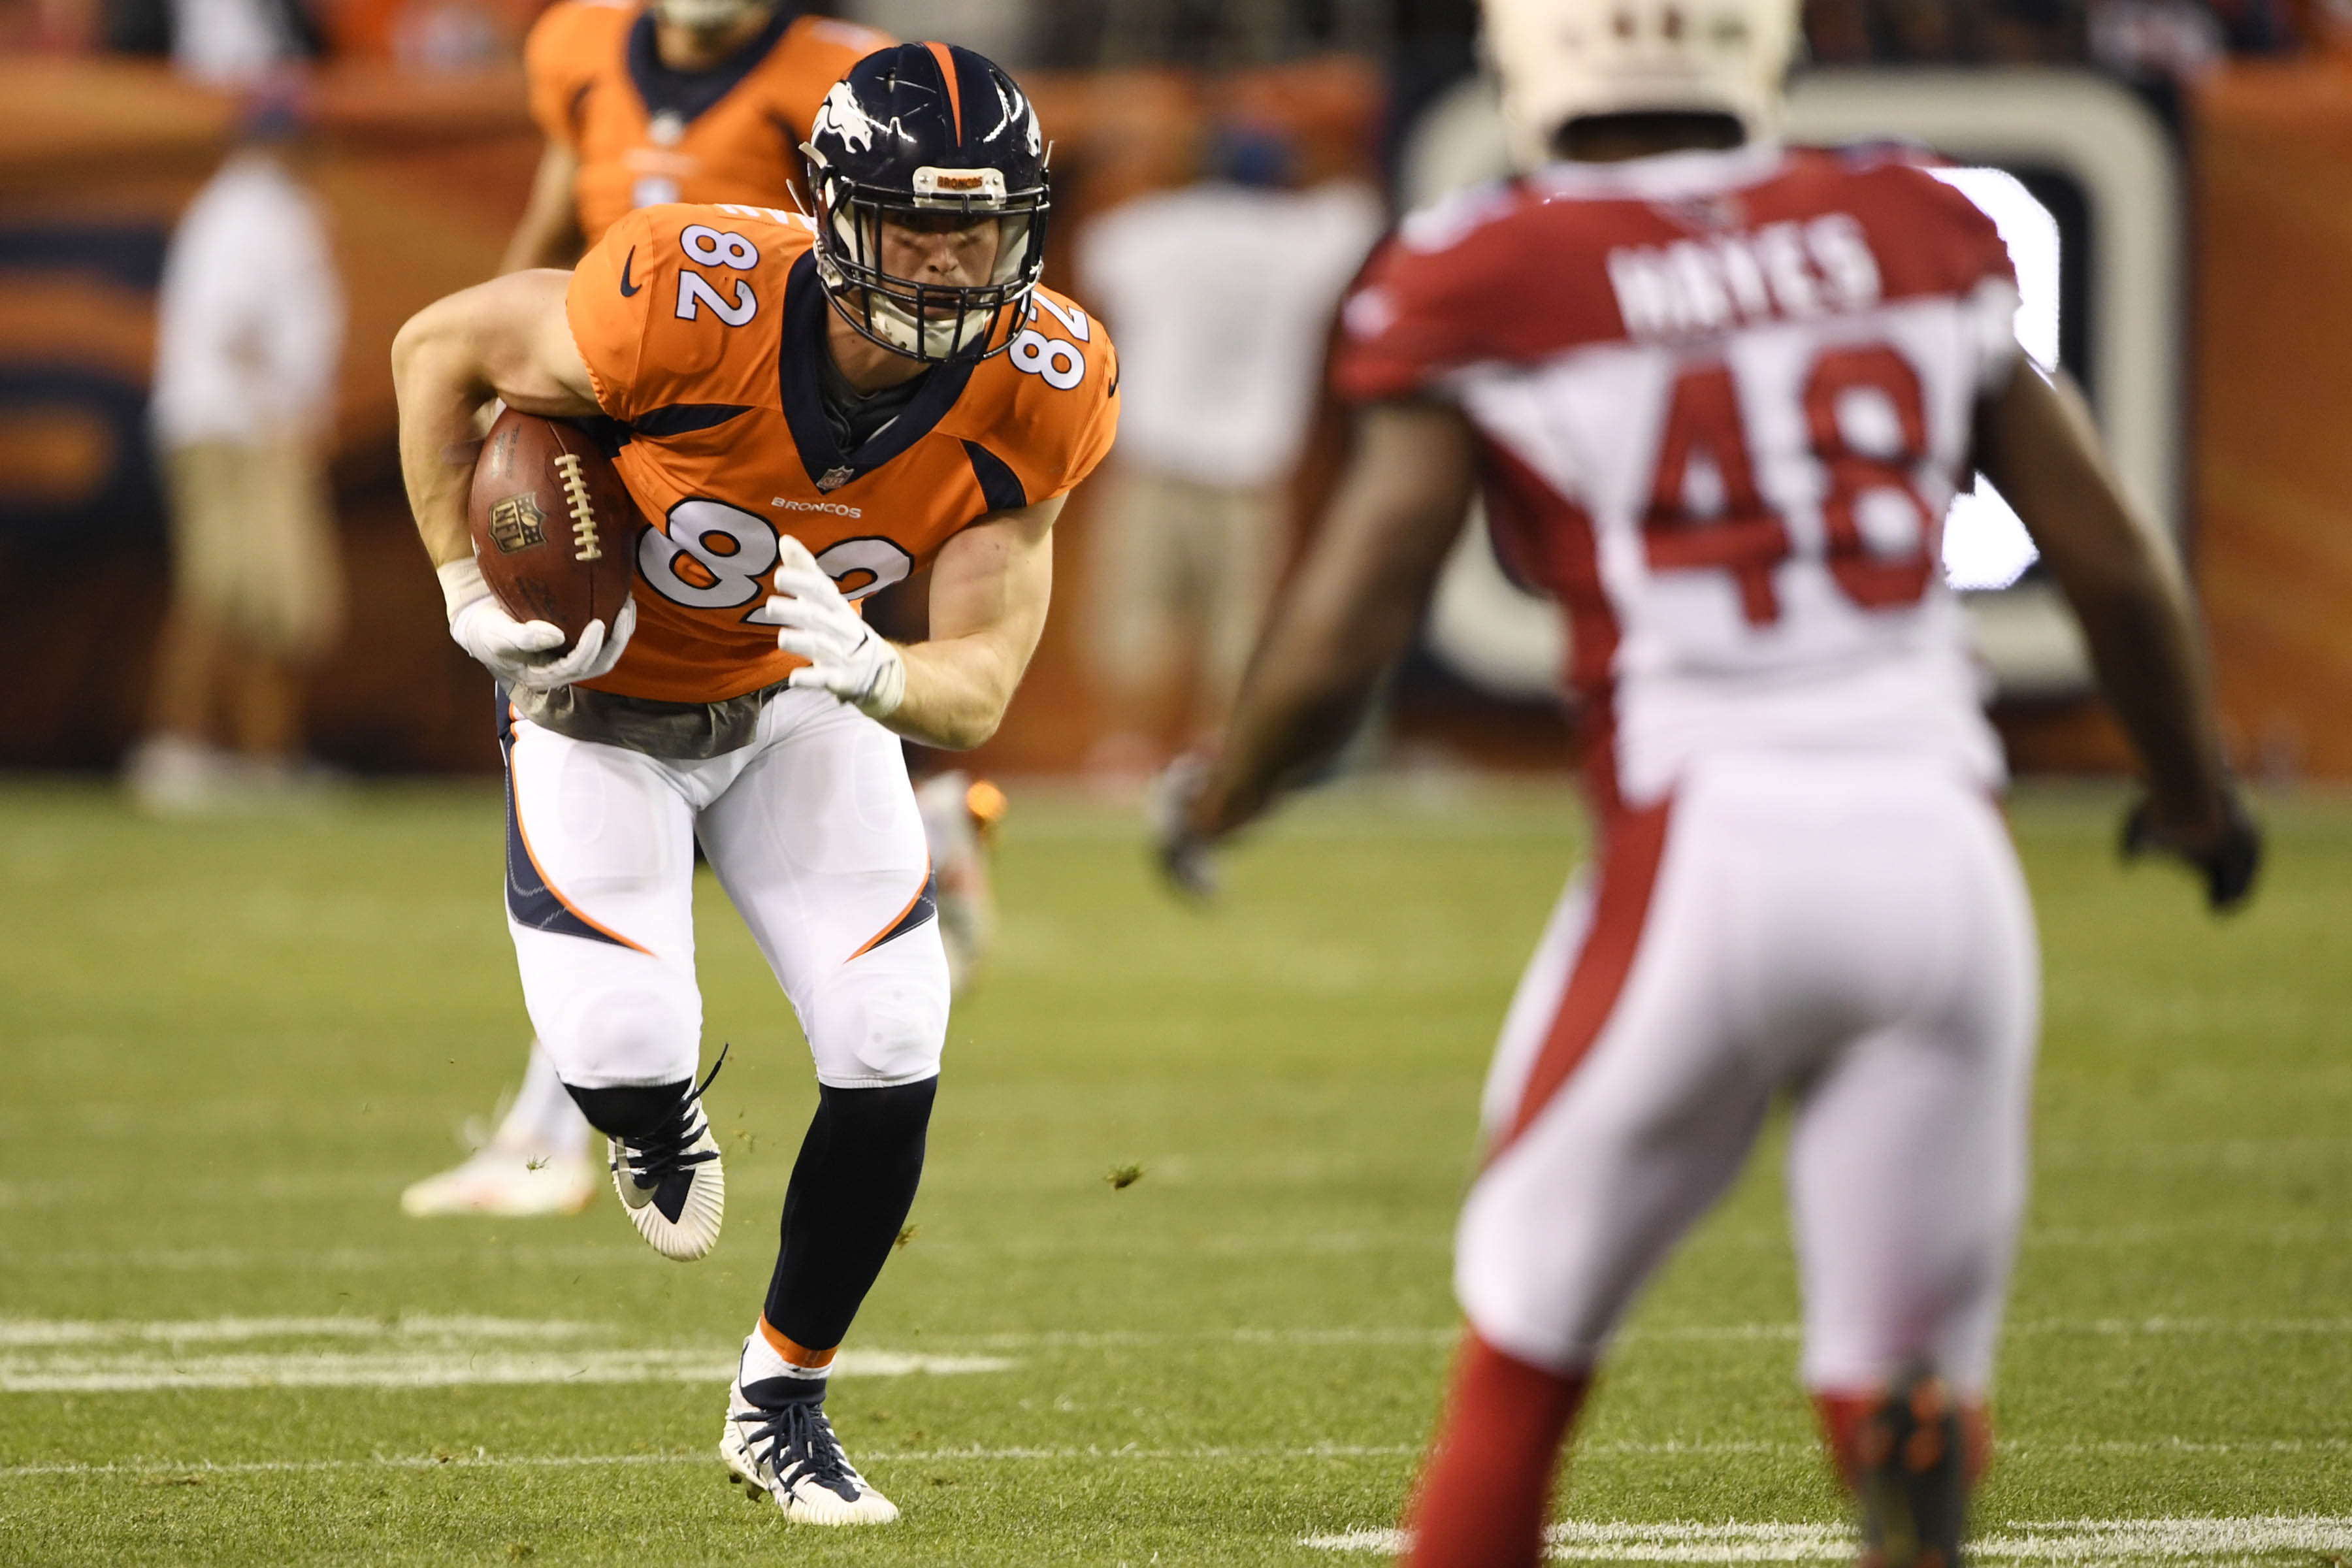 Deep tight ends to stash in dynasty fantasy leagues